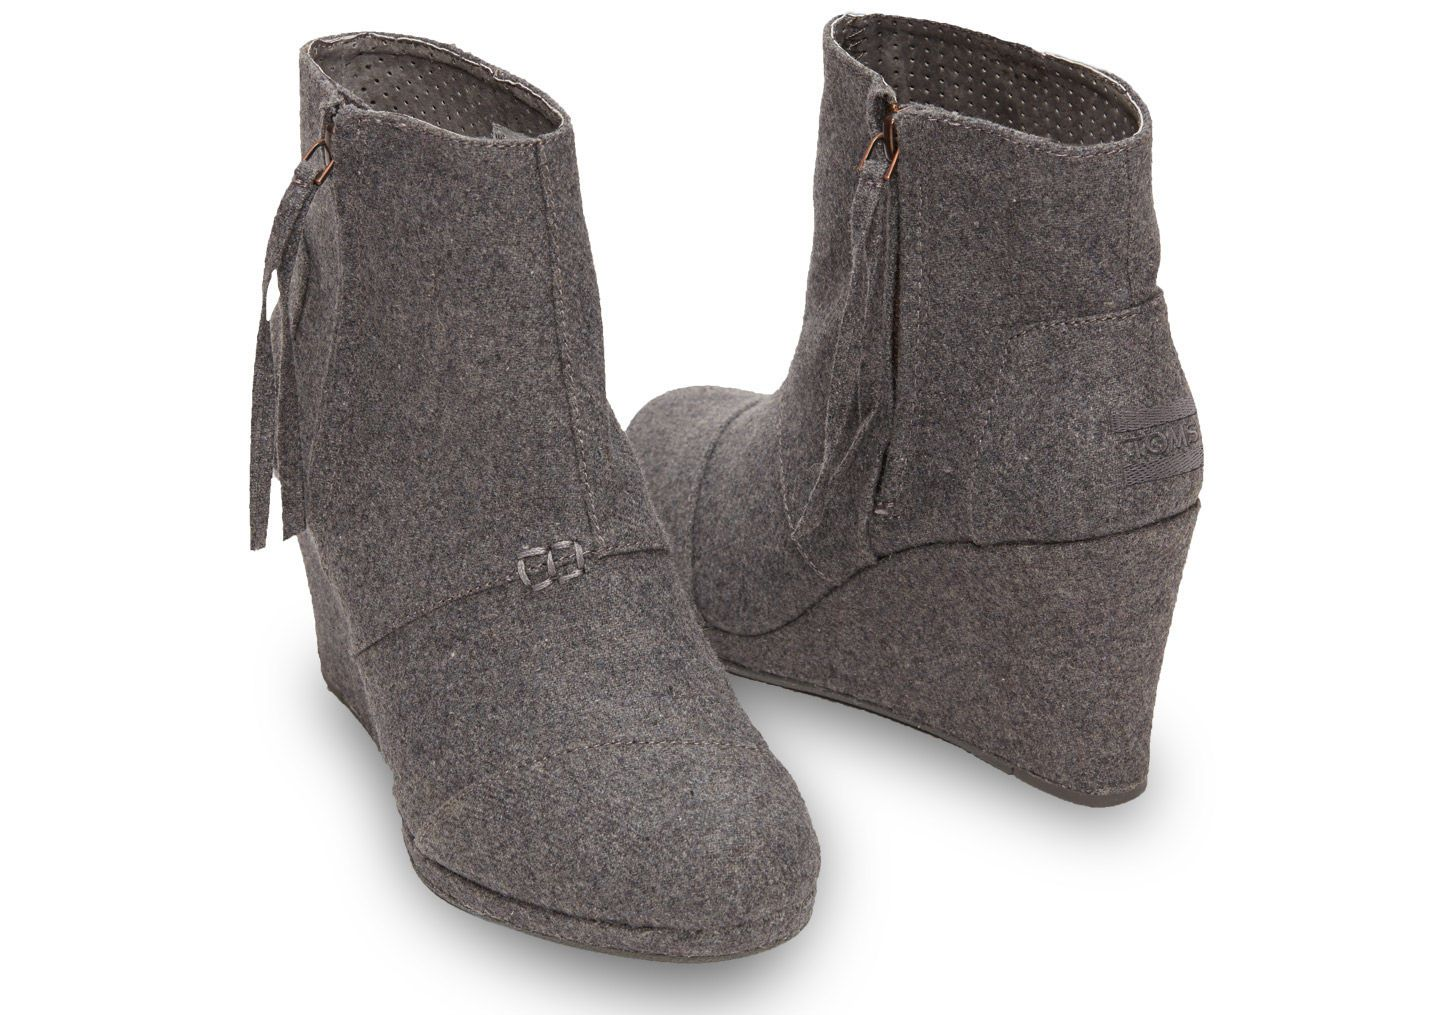 3c837e8c561 Grey Wool Women s Desert Wedge Highs